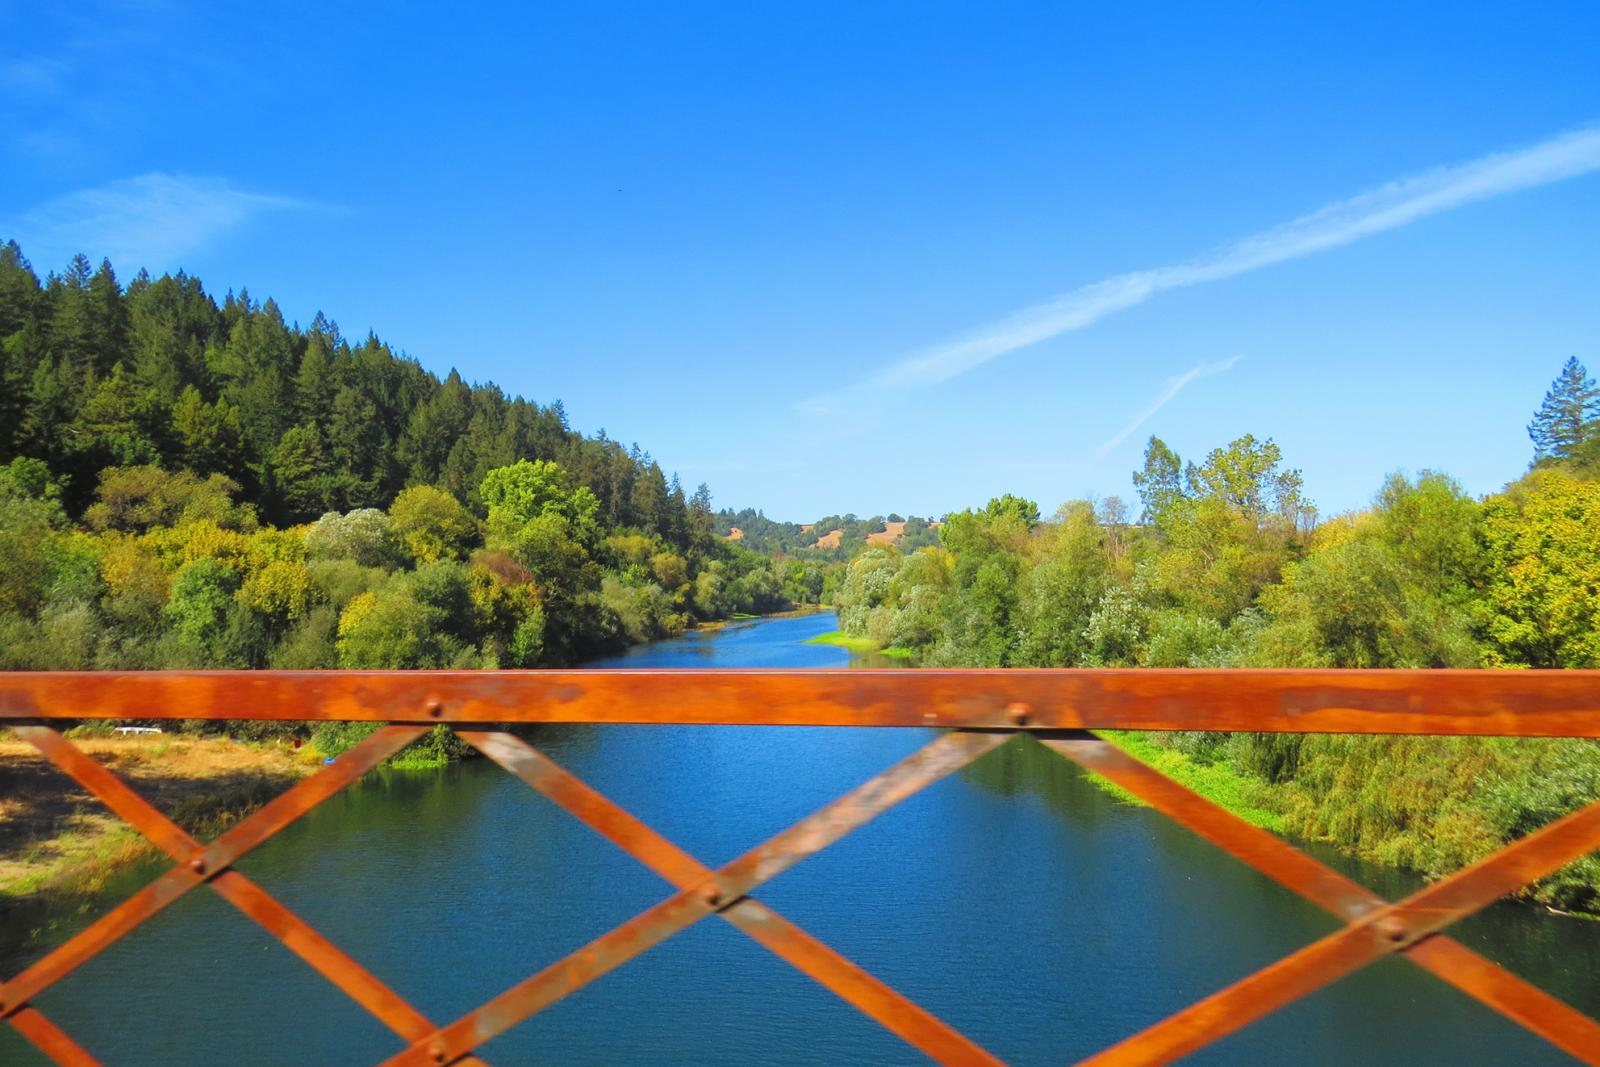 Bridge over the Russian river in California